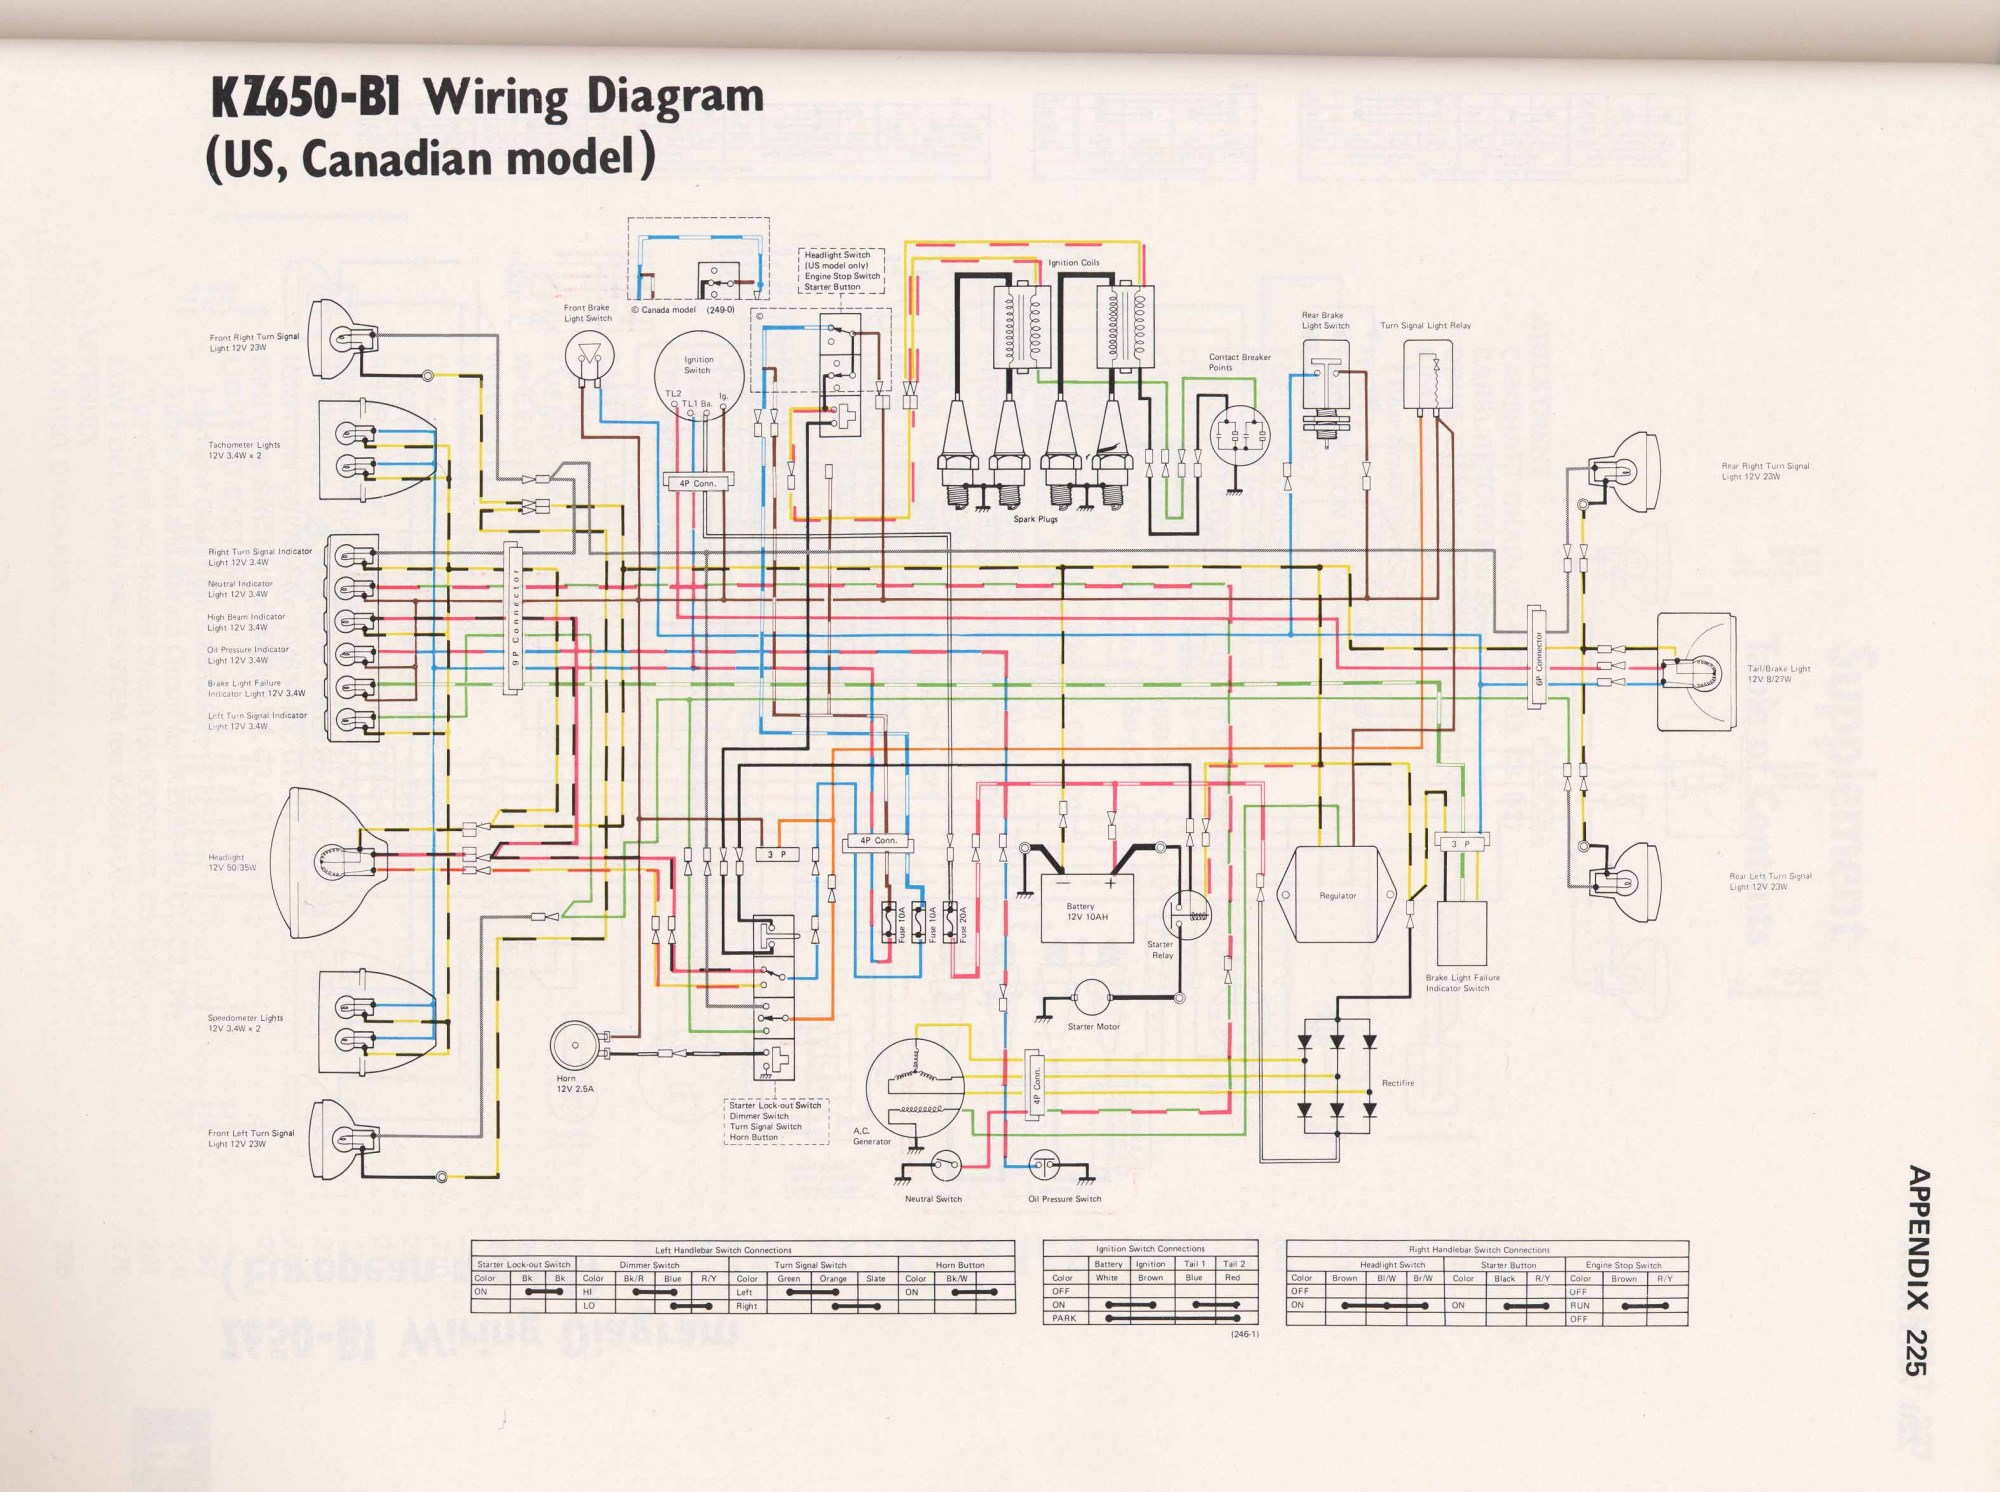 hight resolution of 78 kz650 wiring diagram wiring diagram files bobber kz650 wiring diagram